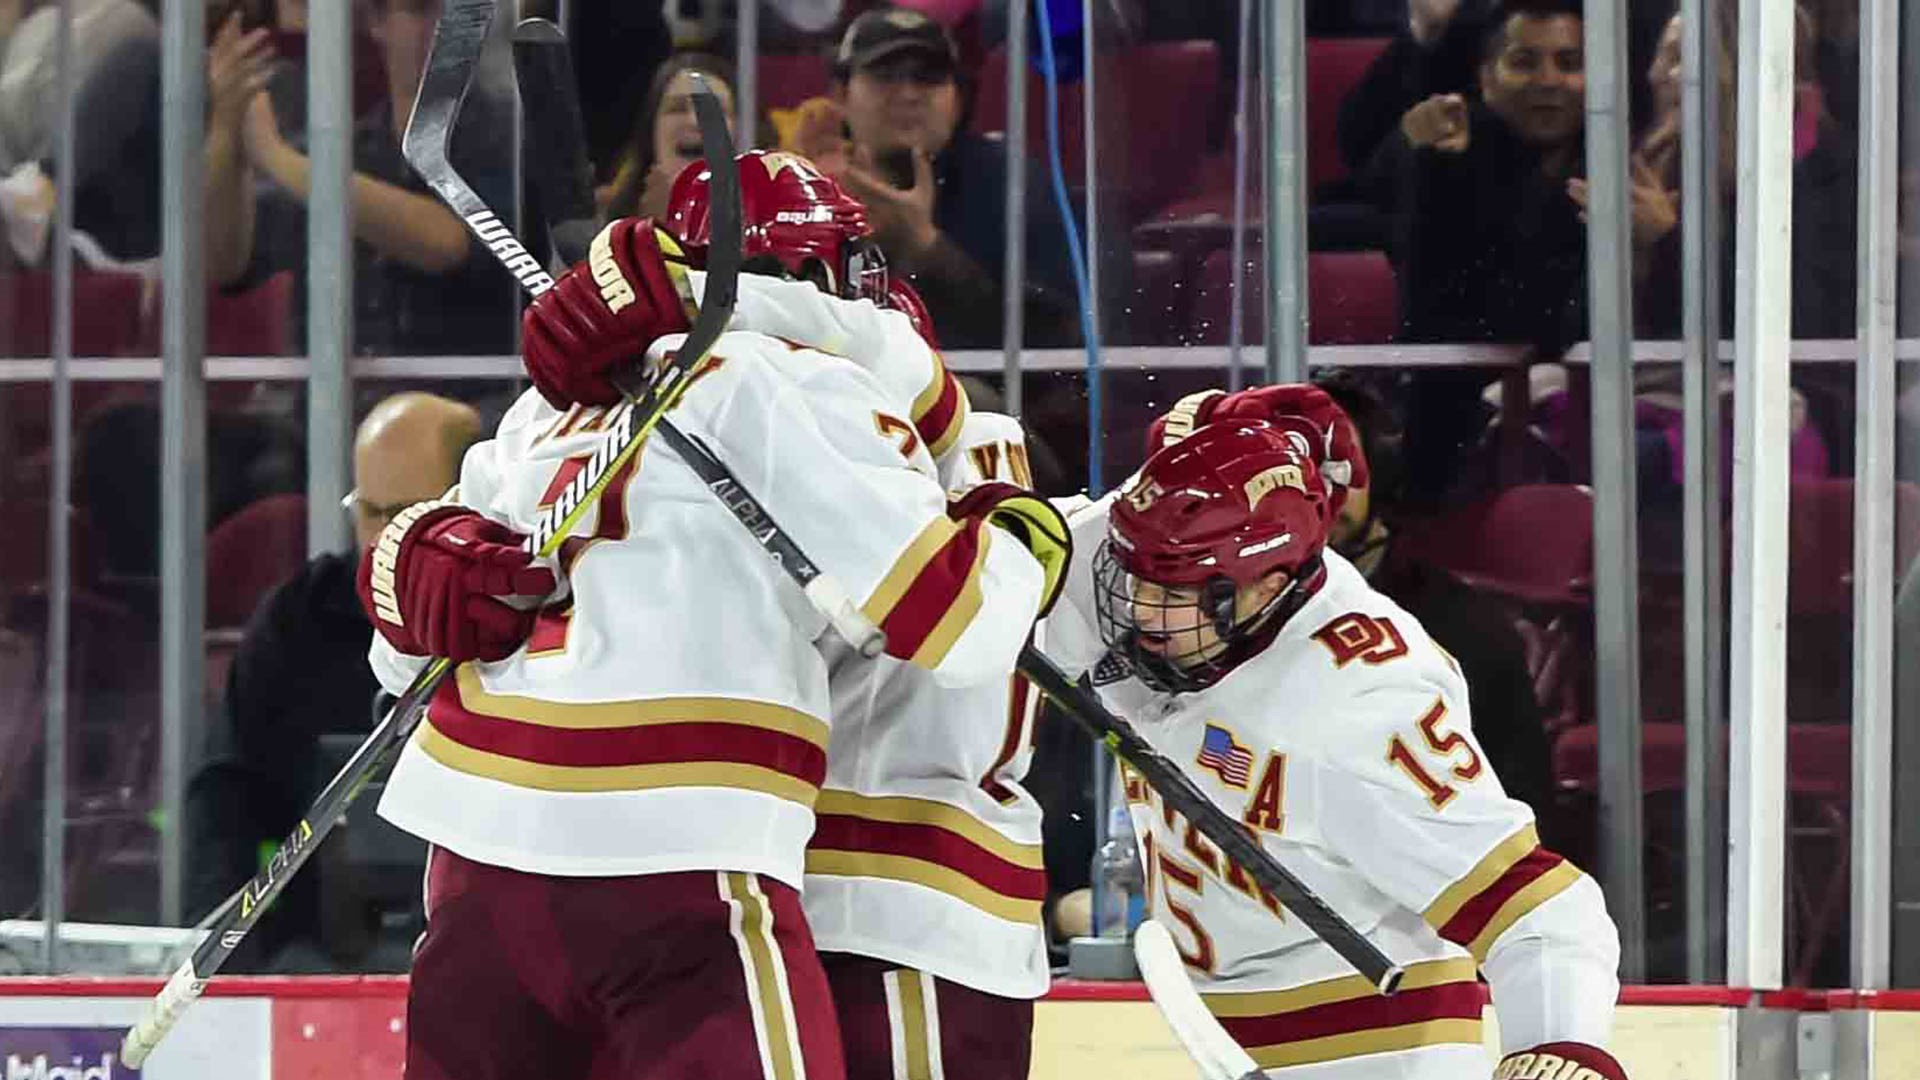 Pioneers Picked 2nd in NCHC Preseason Poll